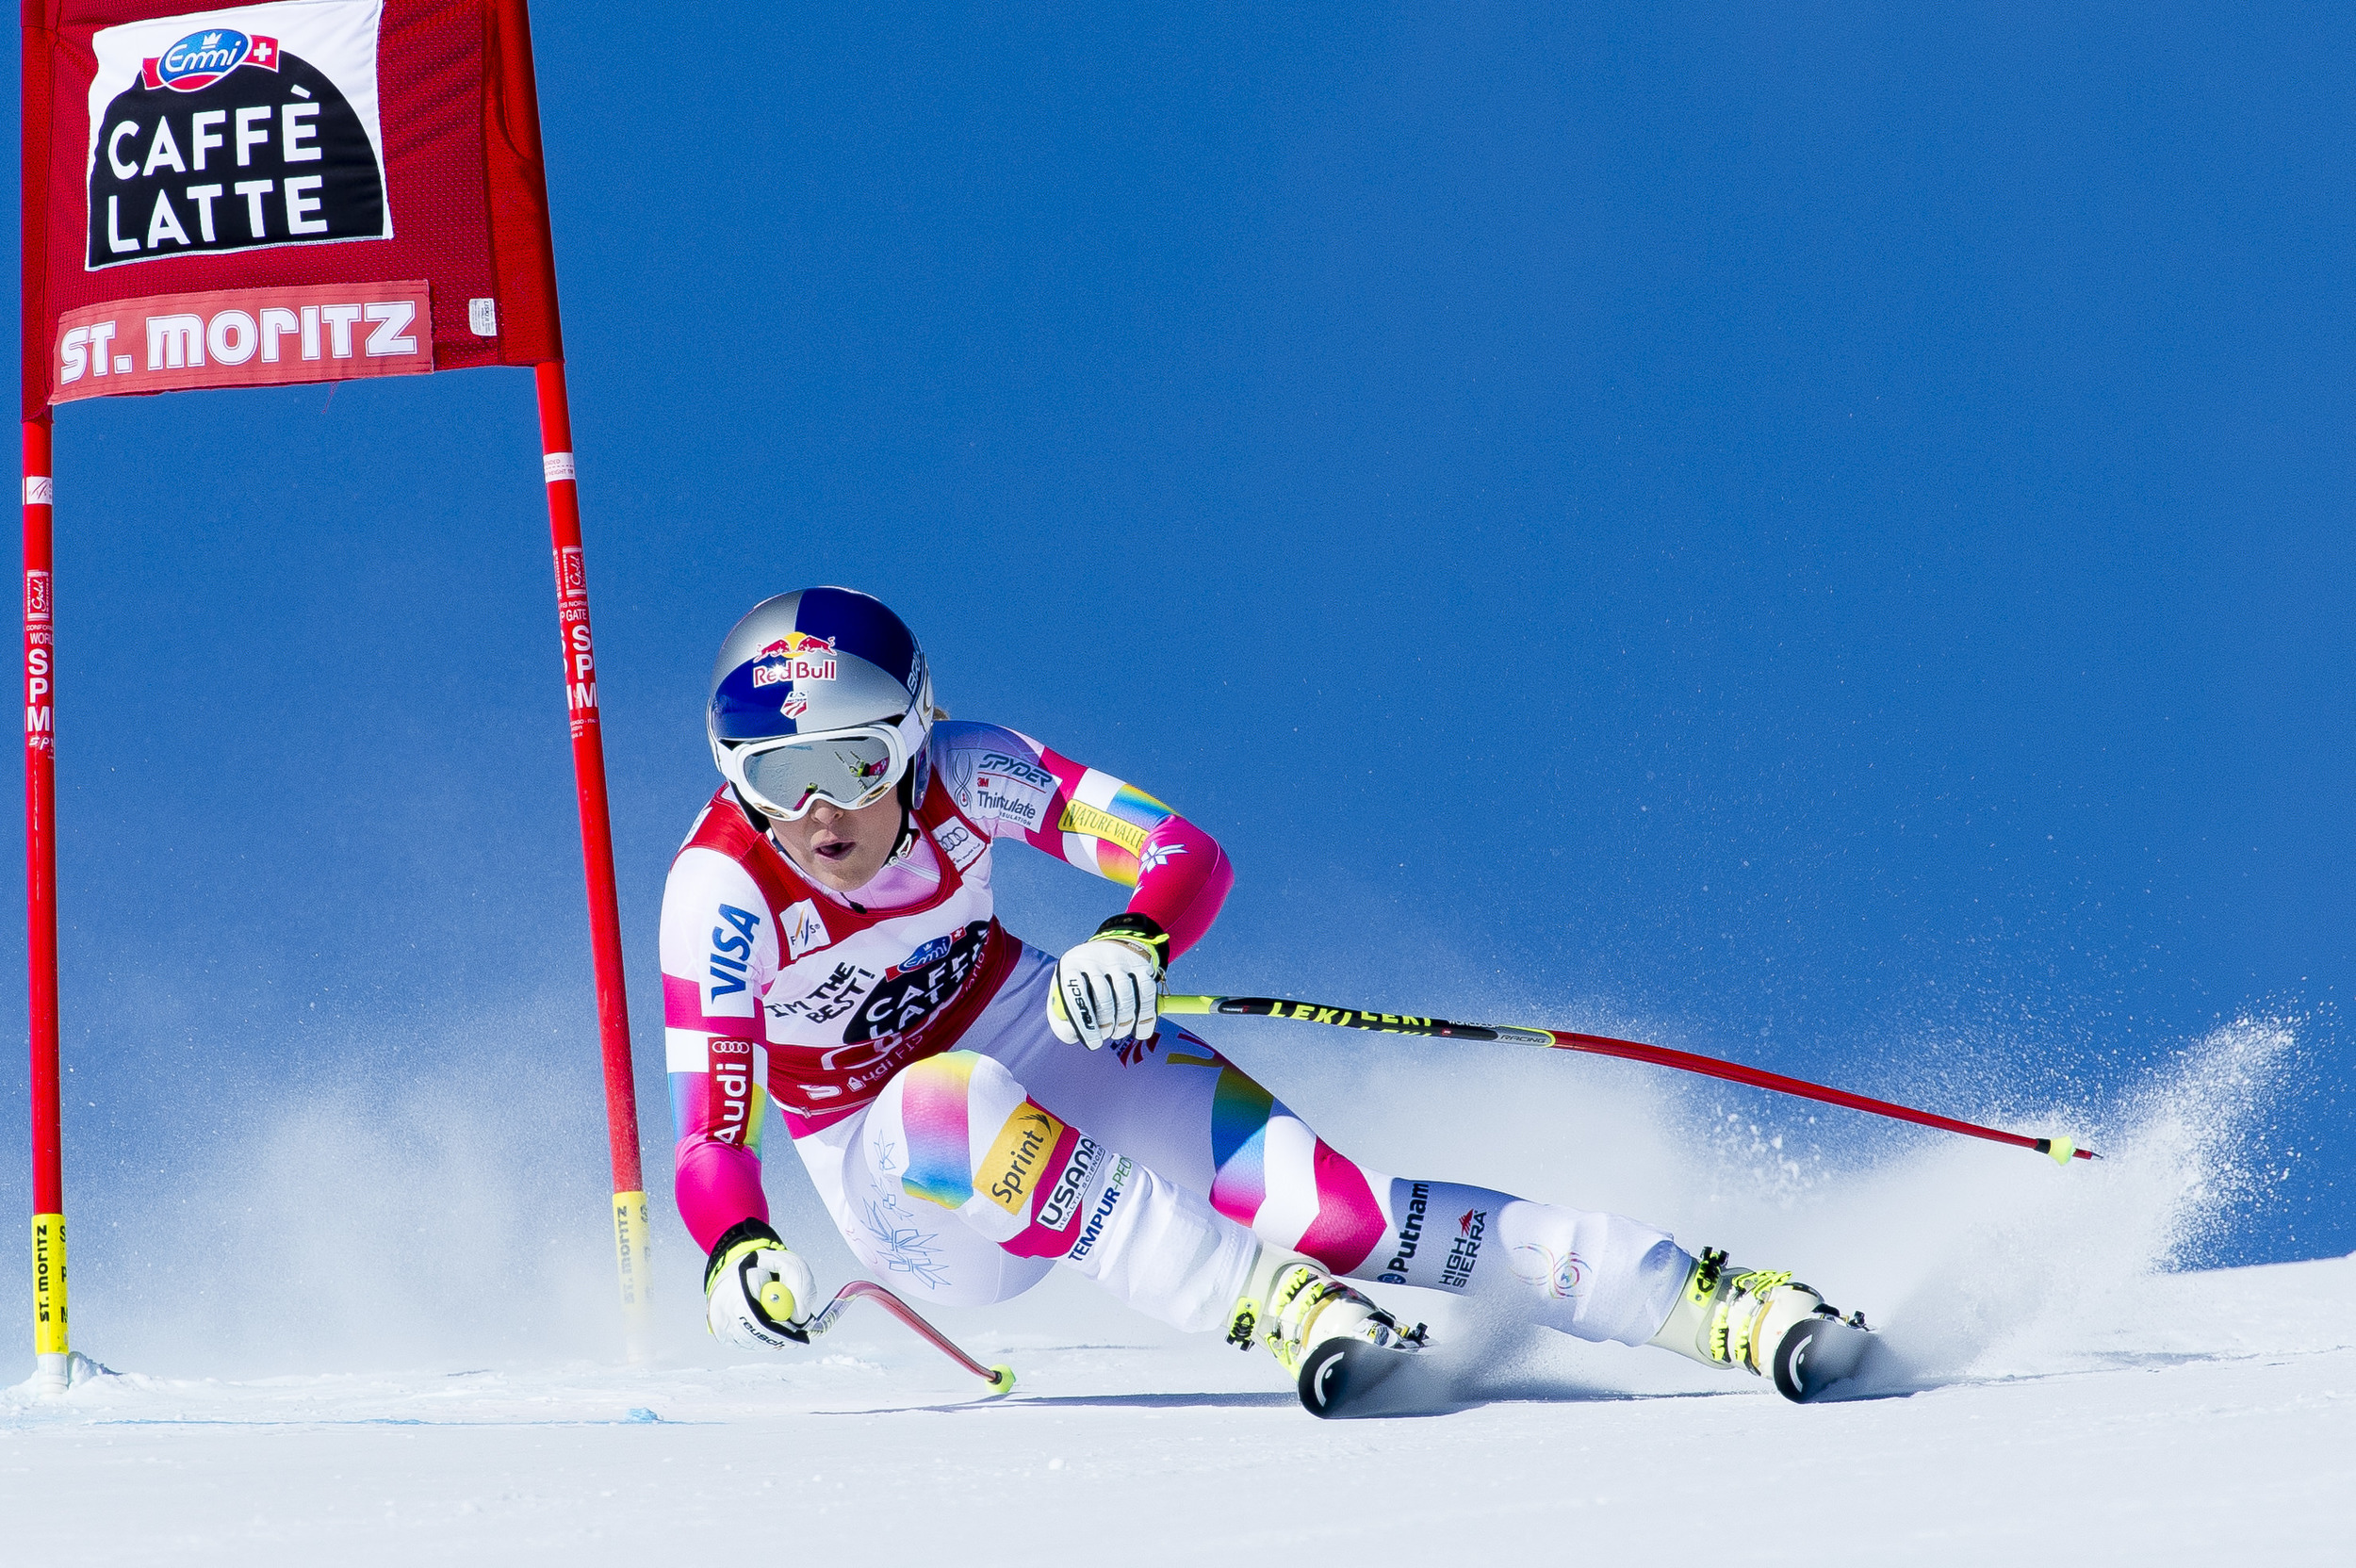 Lindsey Vonn during the FIS Ski Worldcup downhill race in St. Moritz, Switzerland on 24. January 2015.